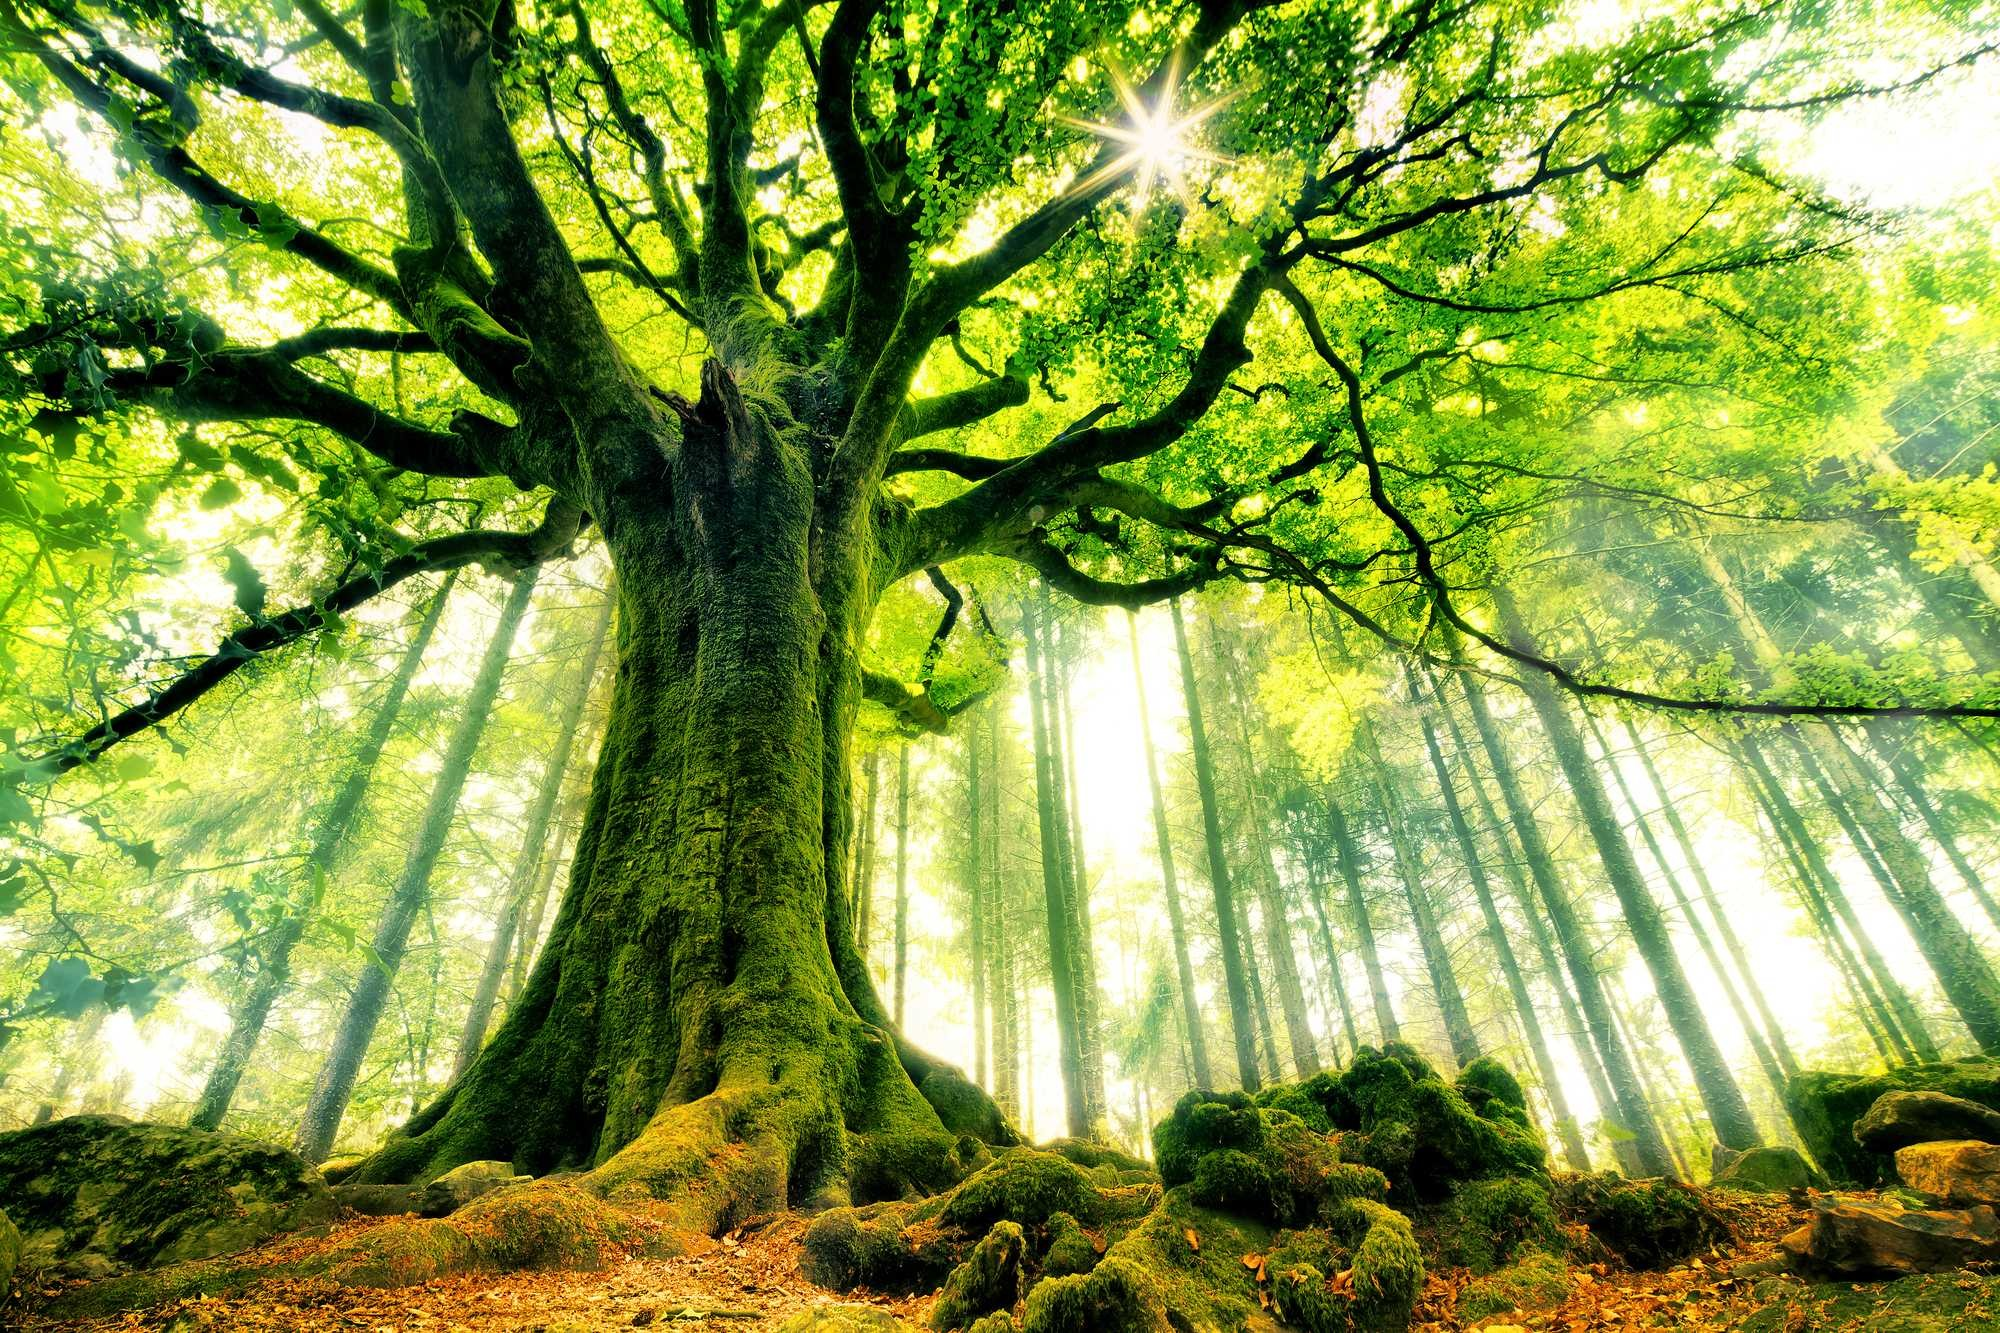 Res: 2000x1333, Full Hd For Tree Wallpaper Forest Murals Nature Scenes Walls High  Resolution Laptop